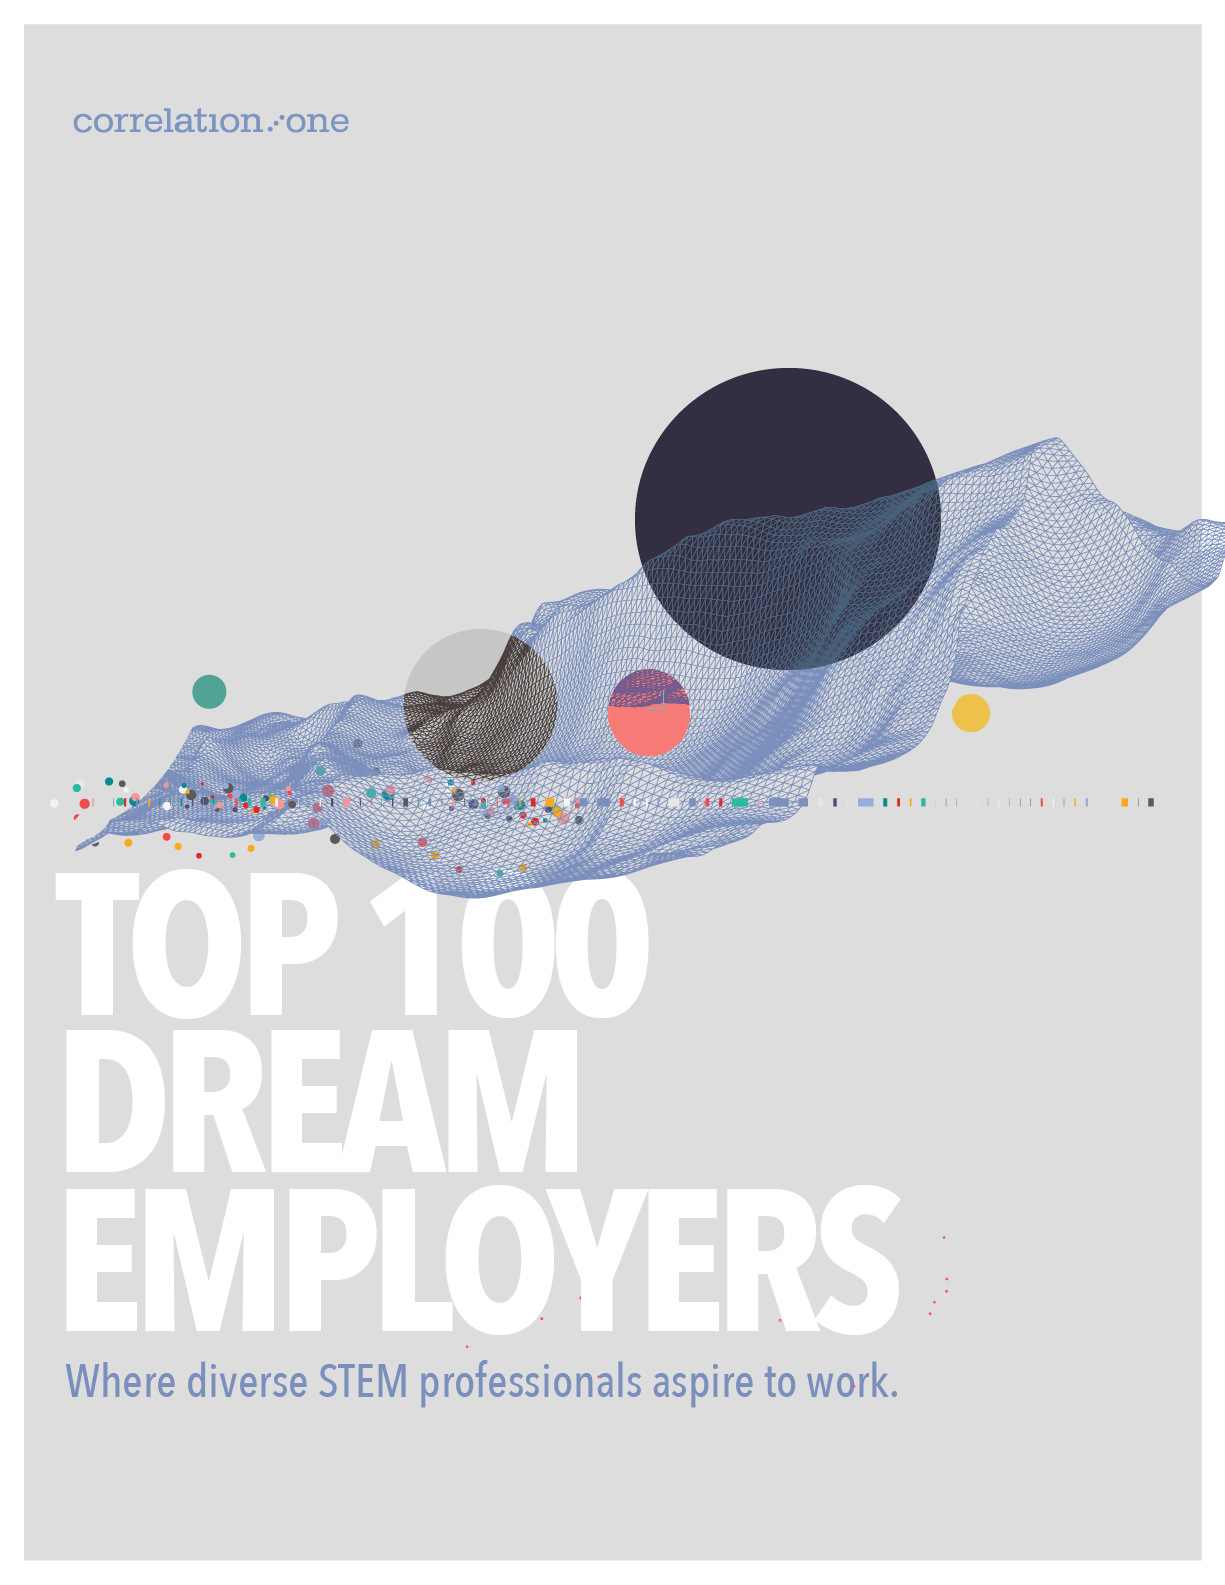 Correlation One white paper: Top 100 Dream Employers: Where Diverse STEM Professionals Aspire to Work.